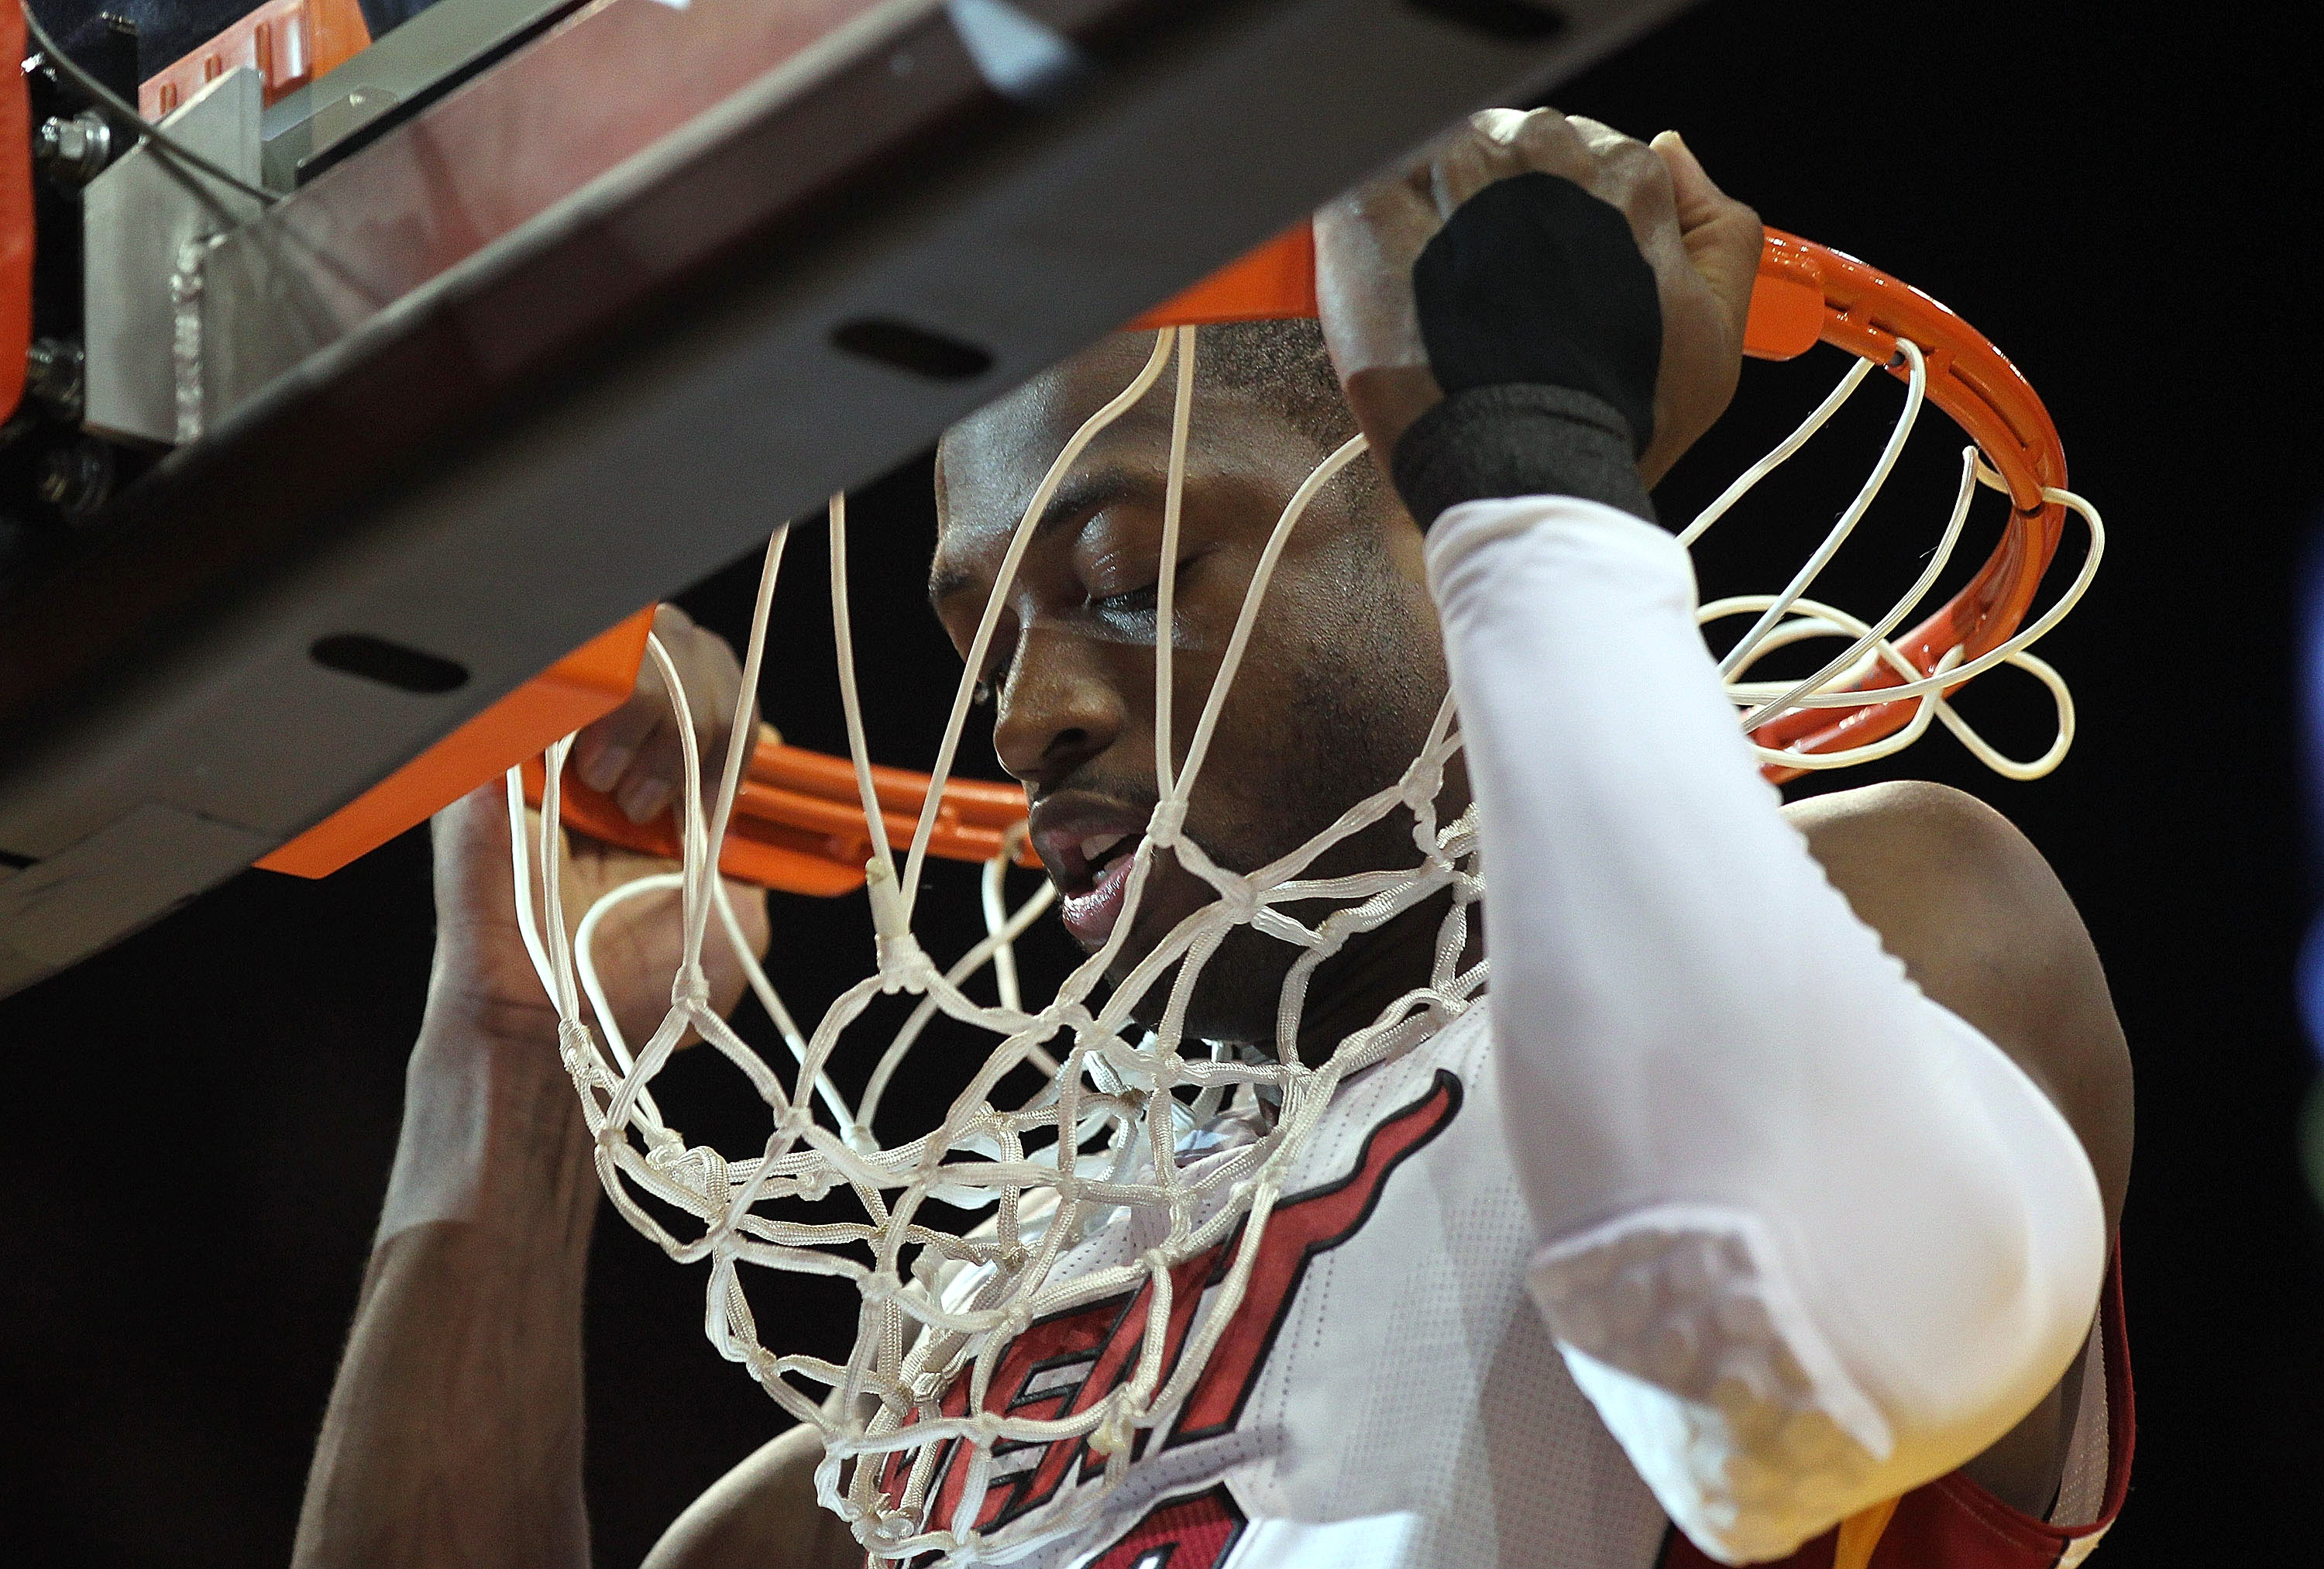 MIAMI, FL - JANUARY 18:  Dwyane Wade #3 of the Miami Heat does pullups on the rim during a game against the Atlanta Hawks at American Airlines Arena on January 18, 2011 in Miami, Florida. NOTE TO USER: User expressly acknowledges and agrees that, by downl